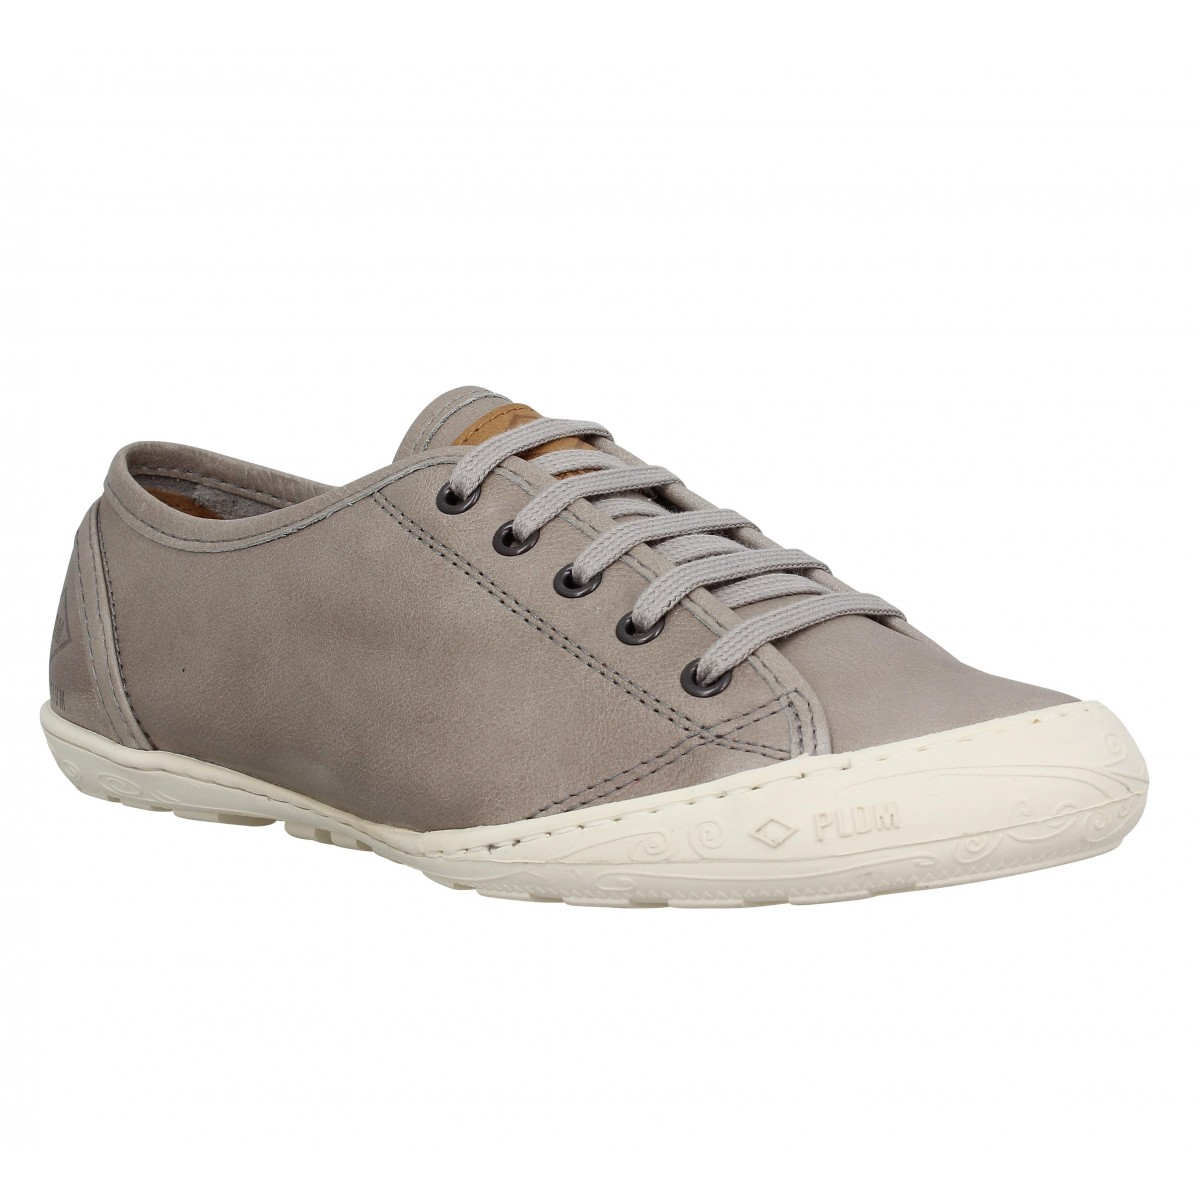 Baskets PALLADIUM Game Cash cuir Femme Taupe